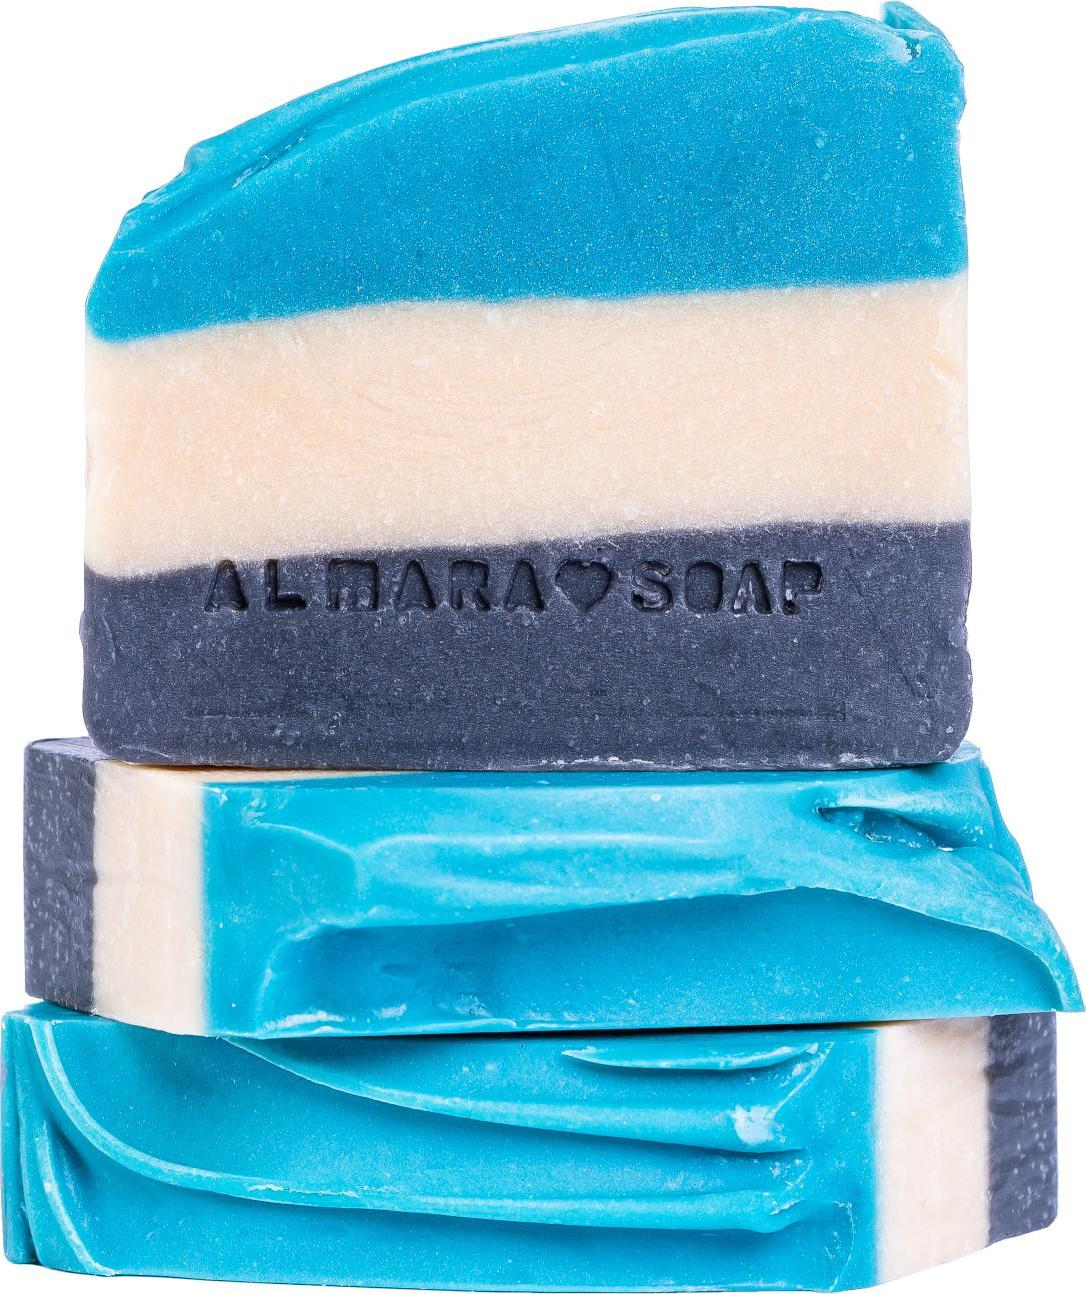 Almara Soap Mýdlo Gentlemen´s Club 100 g - 5 g